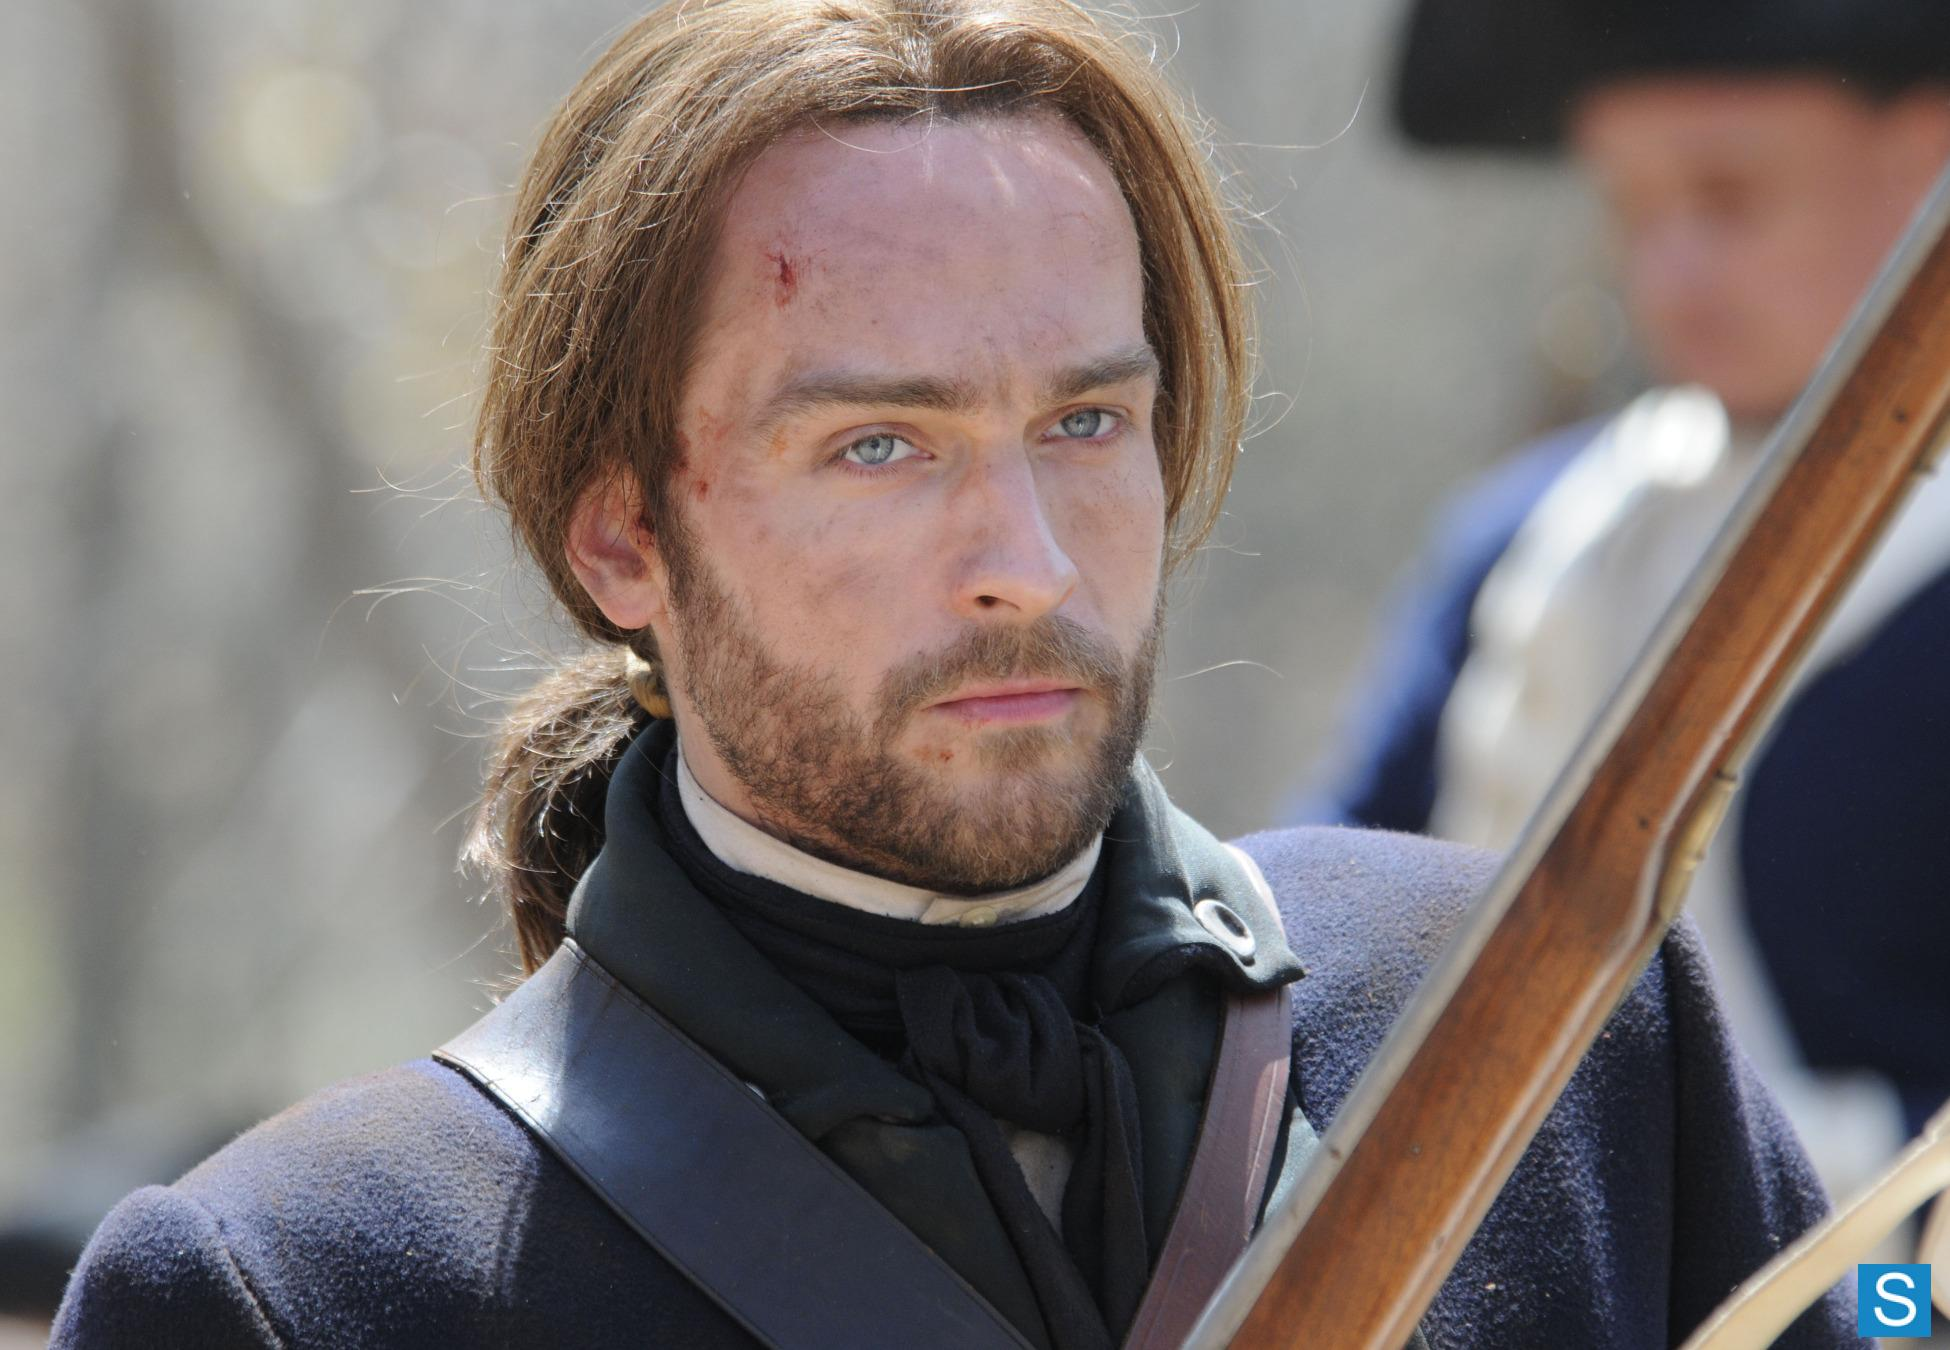 tom s top career goals tom mison tom s top 3 career goals